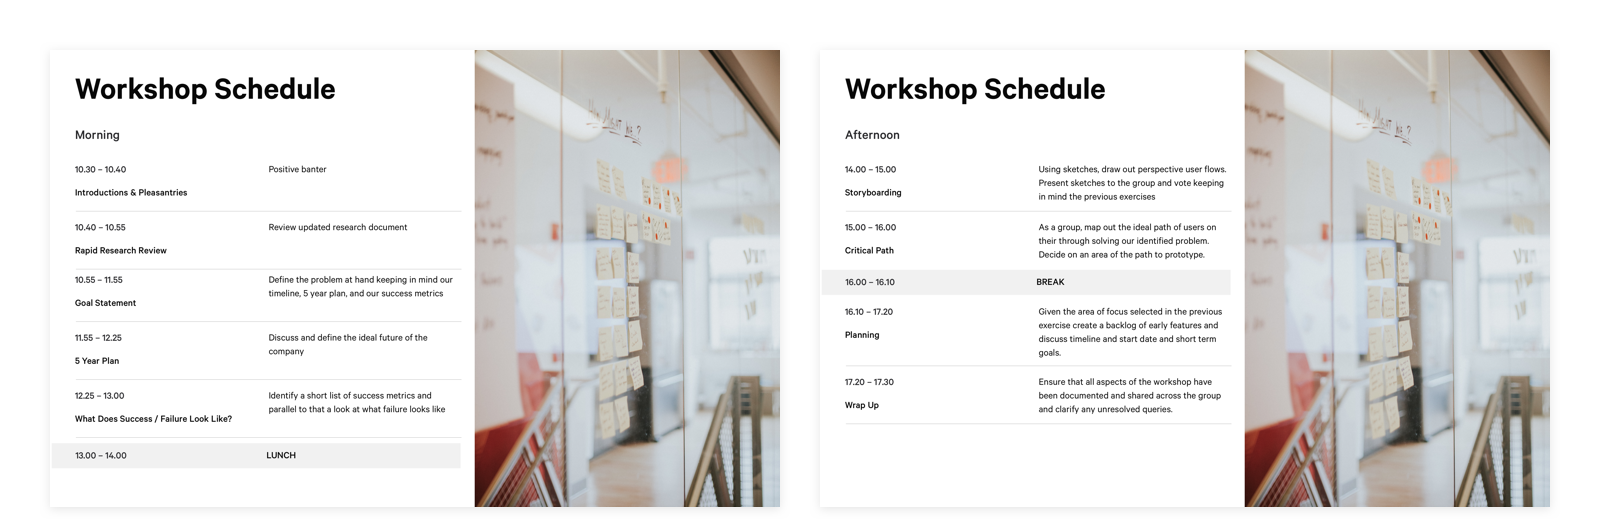 two presenation mock ups of the workshop schedule